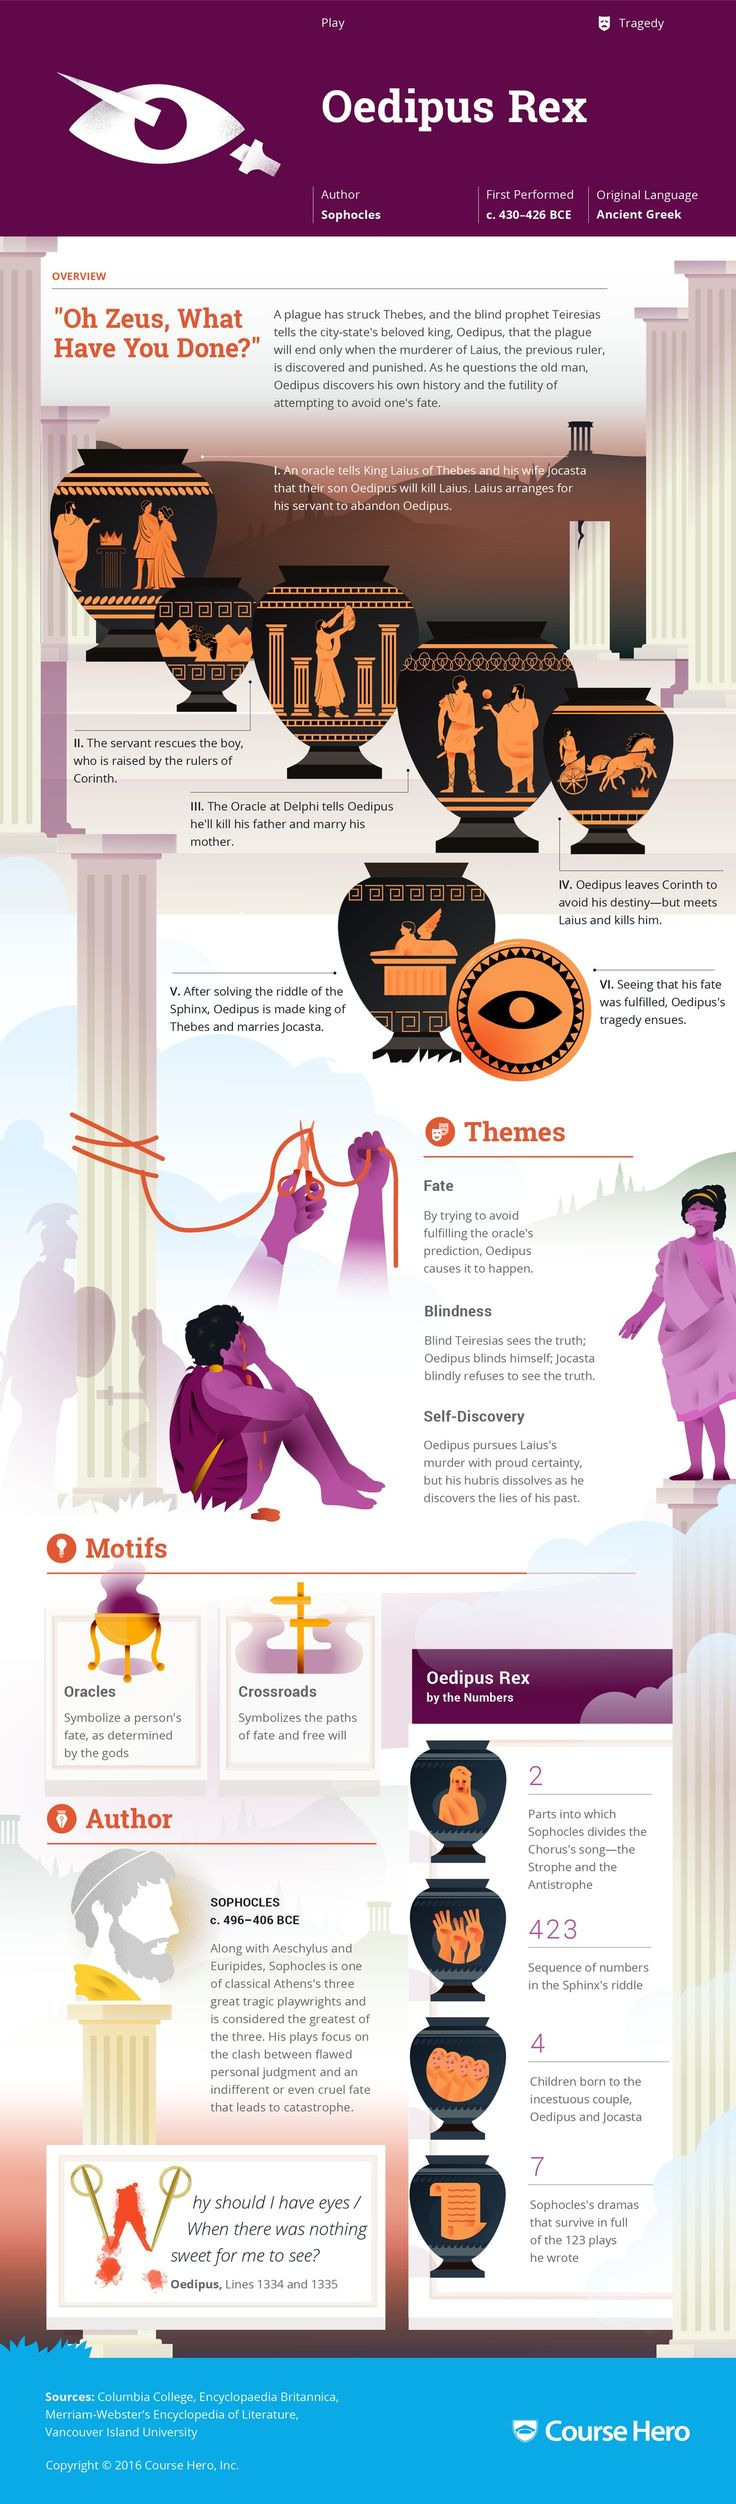 Oedipus Rex Infographic | Course Hero